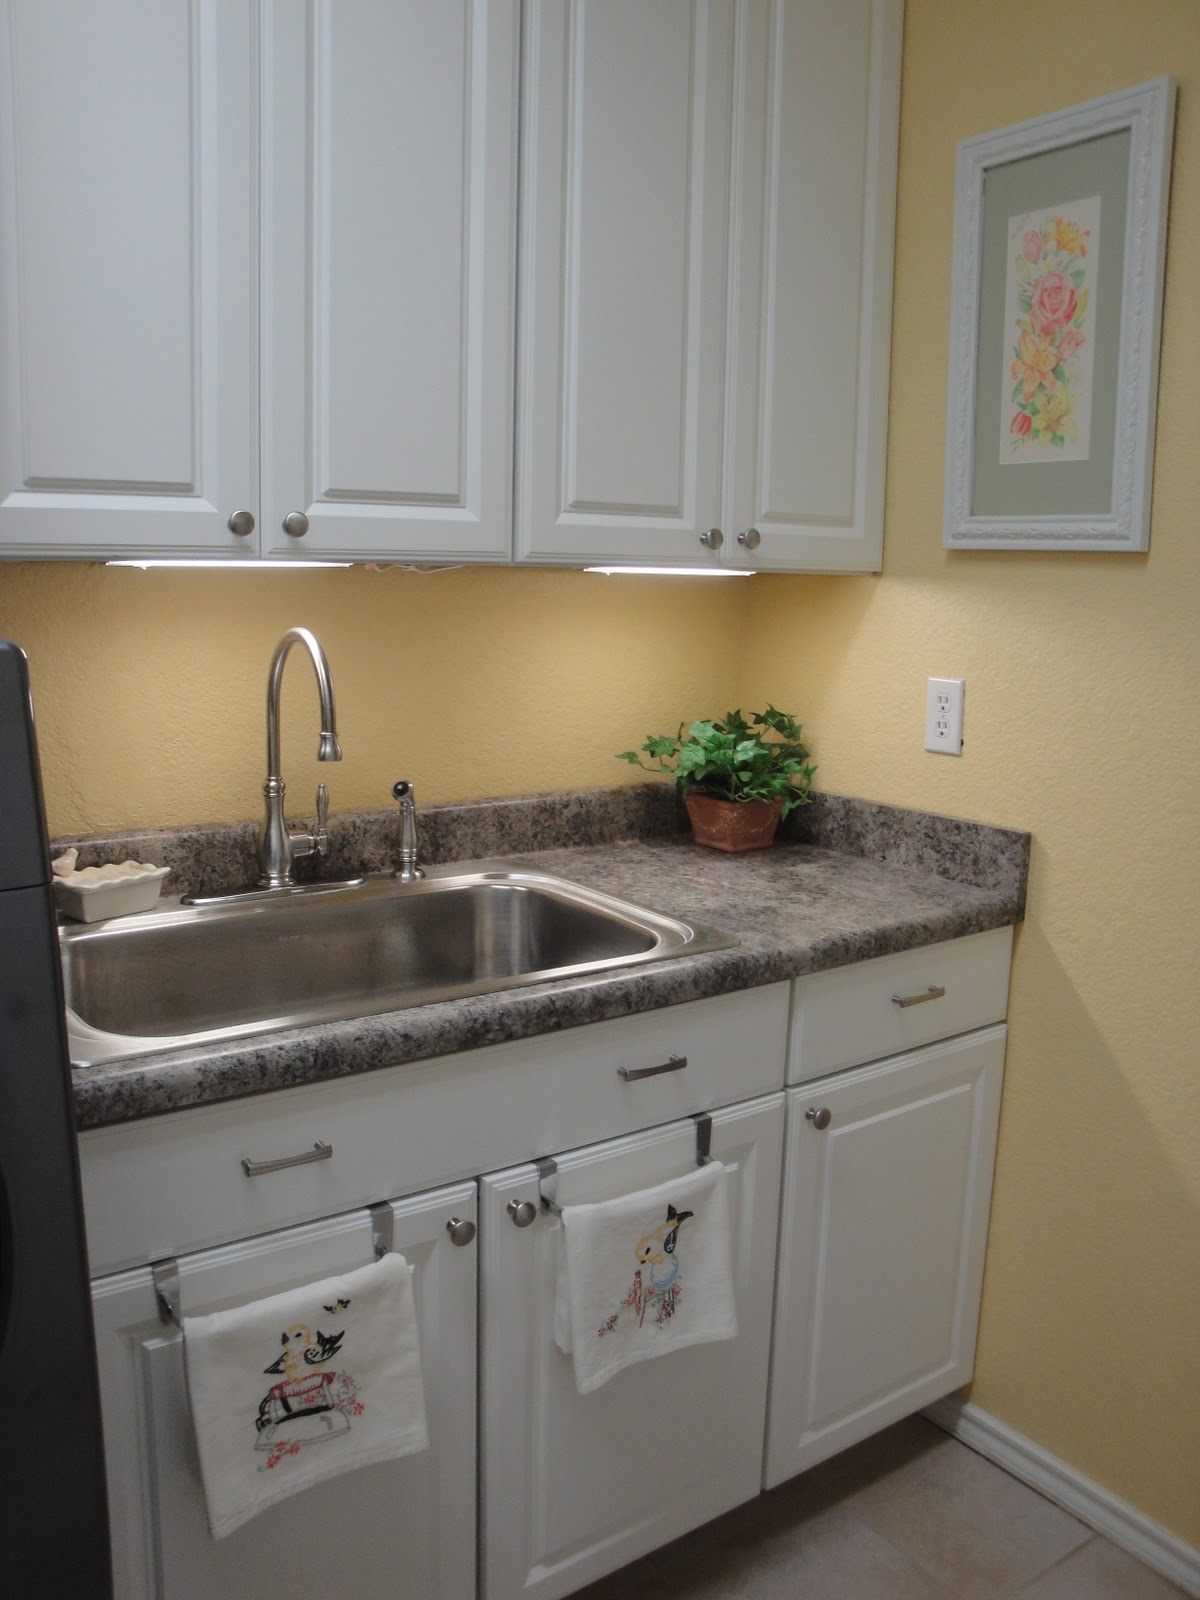 Laundry Room Sink With Cabinet : Vintage Linen Treasures: New and Improved Laundry Room